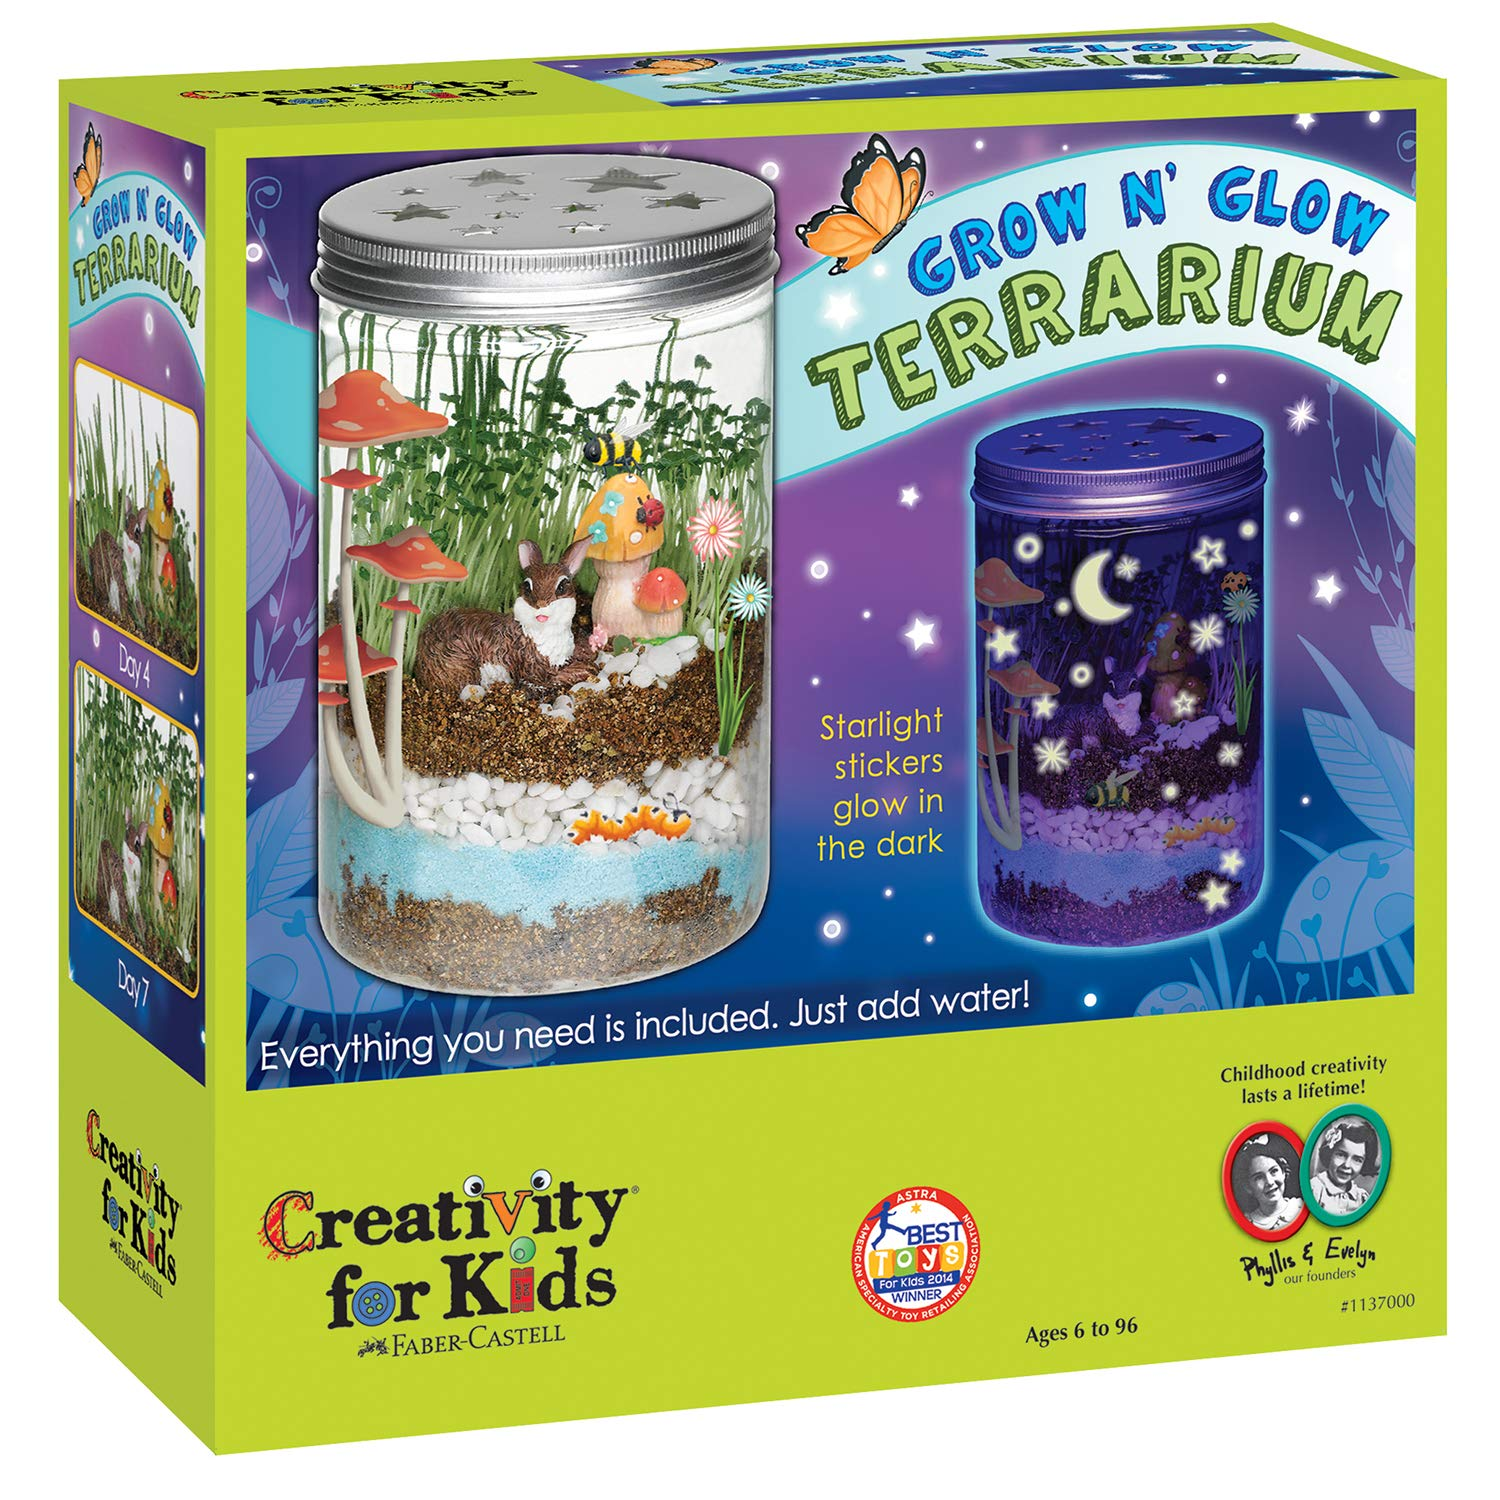 Creativity For Kids Grow 'N Glow Terrarium Science Kits for Kids - Create Your Own Mini Ecosystem, Educational Toys by Creativity for Kids